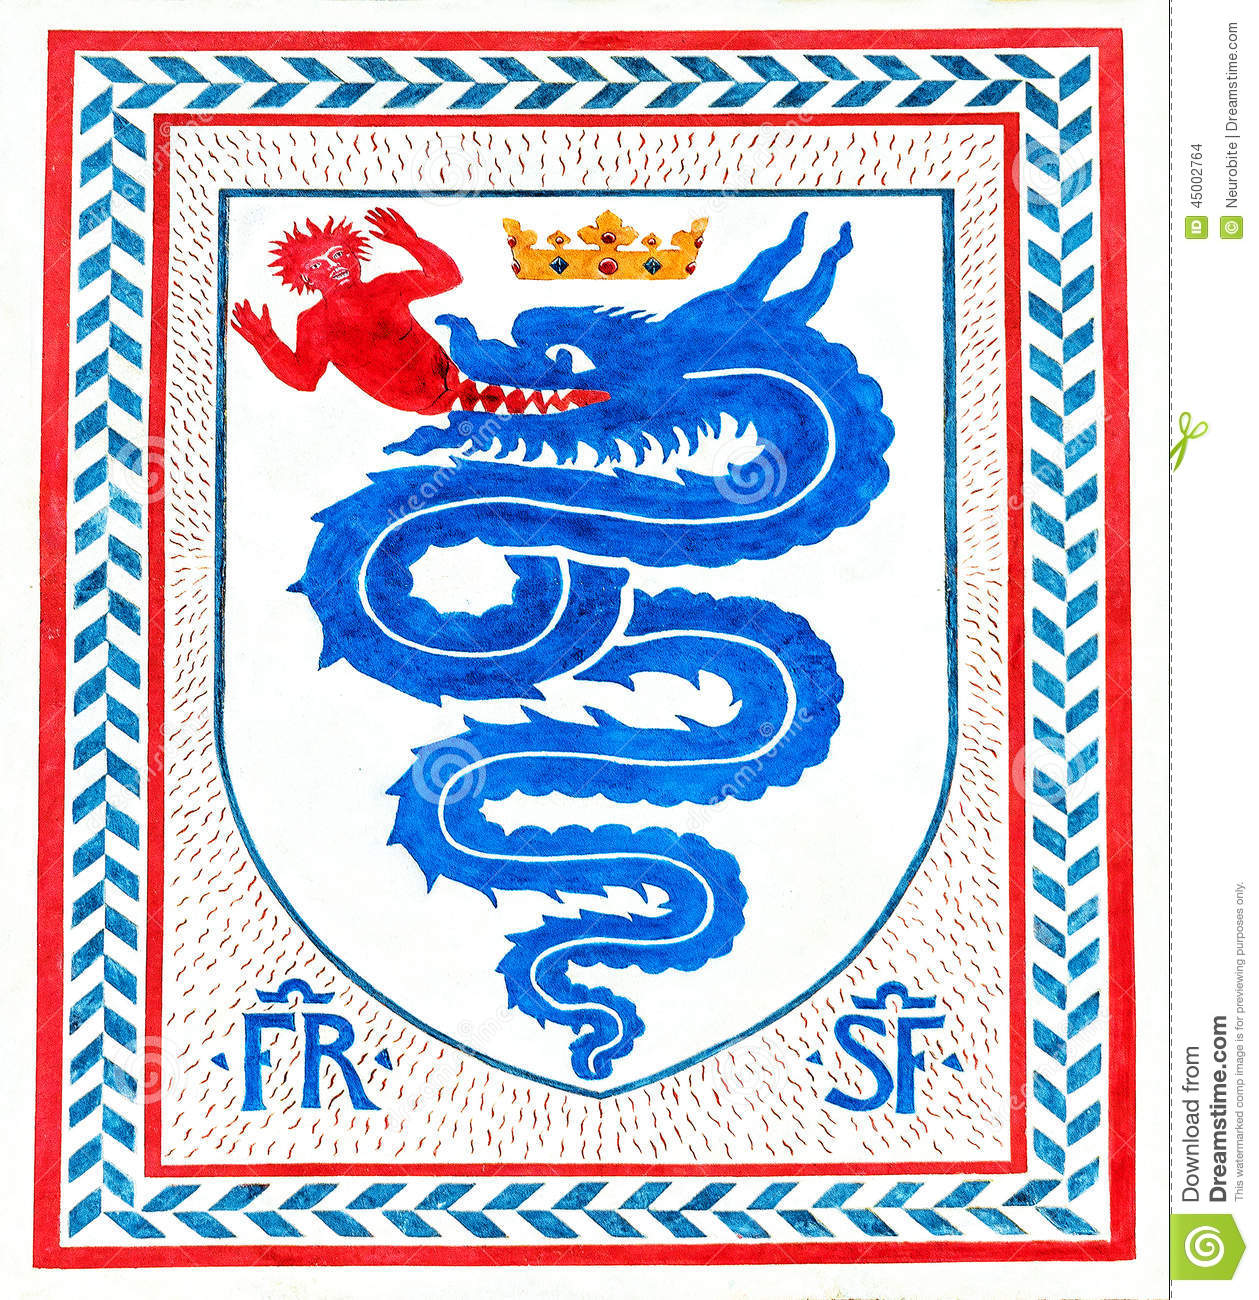 Italian handwritten postcard letter stock photo image 39254147 - Old Italian Coat Of Arms Of The Knight Order Milan Italy Stock Images